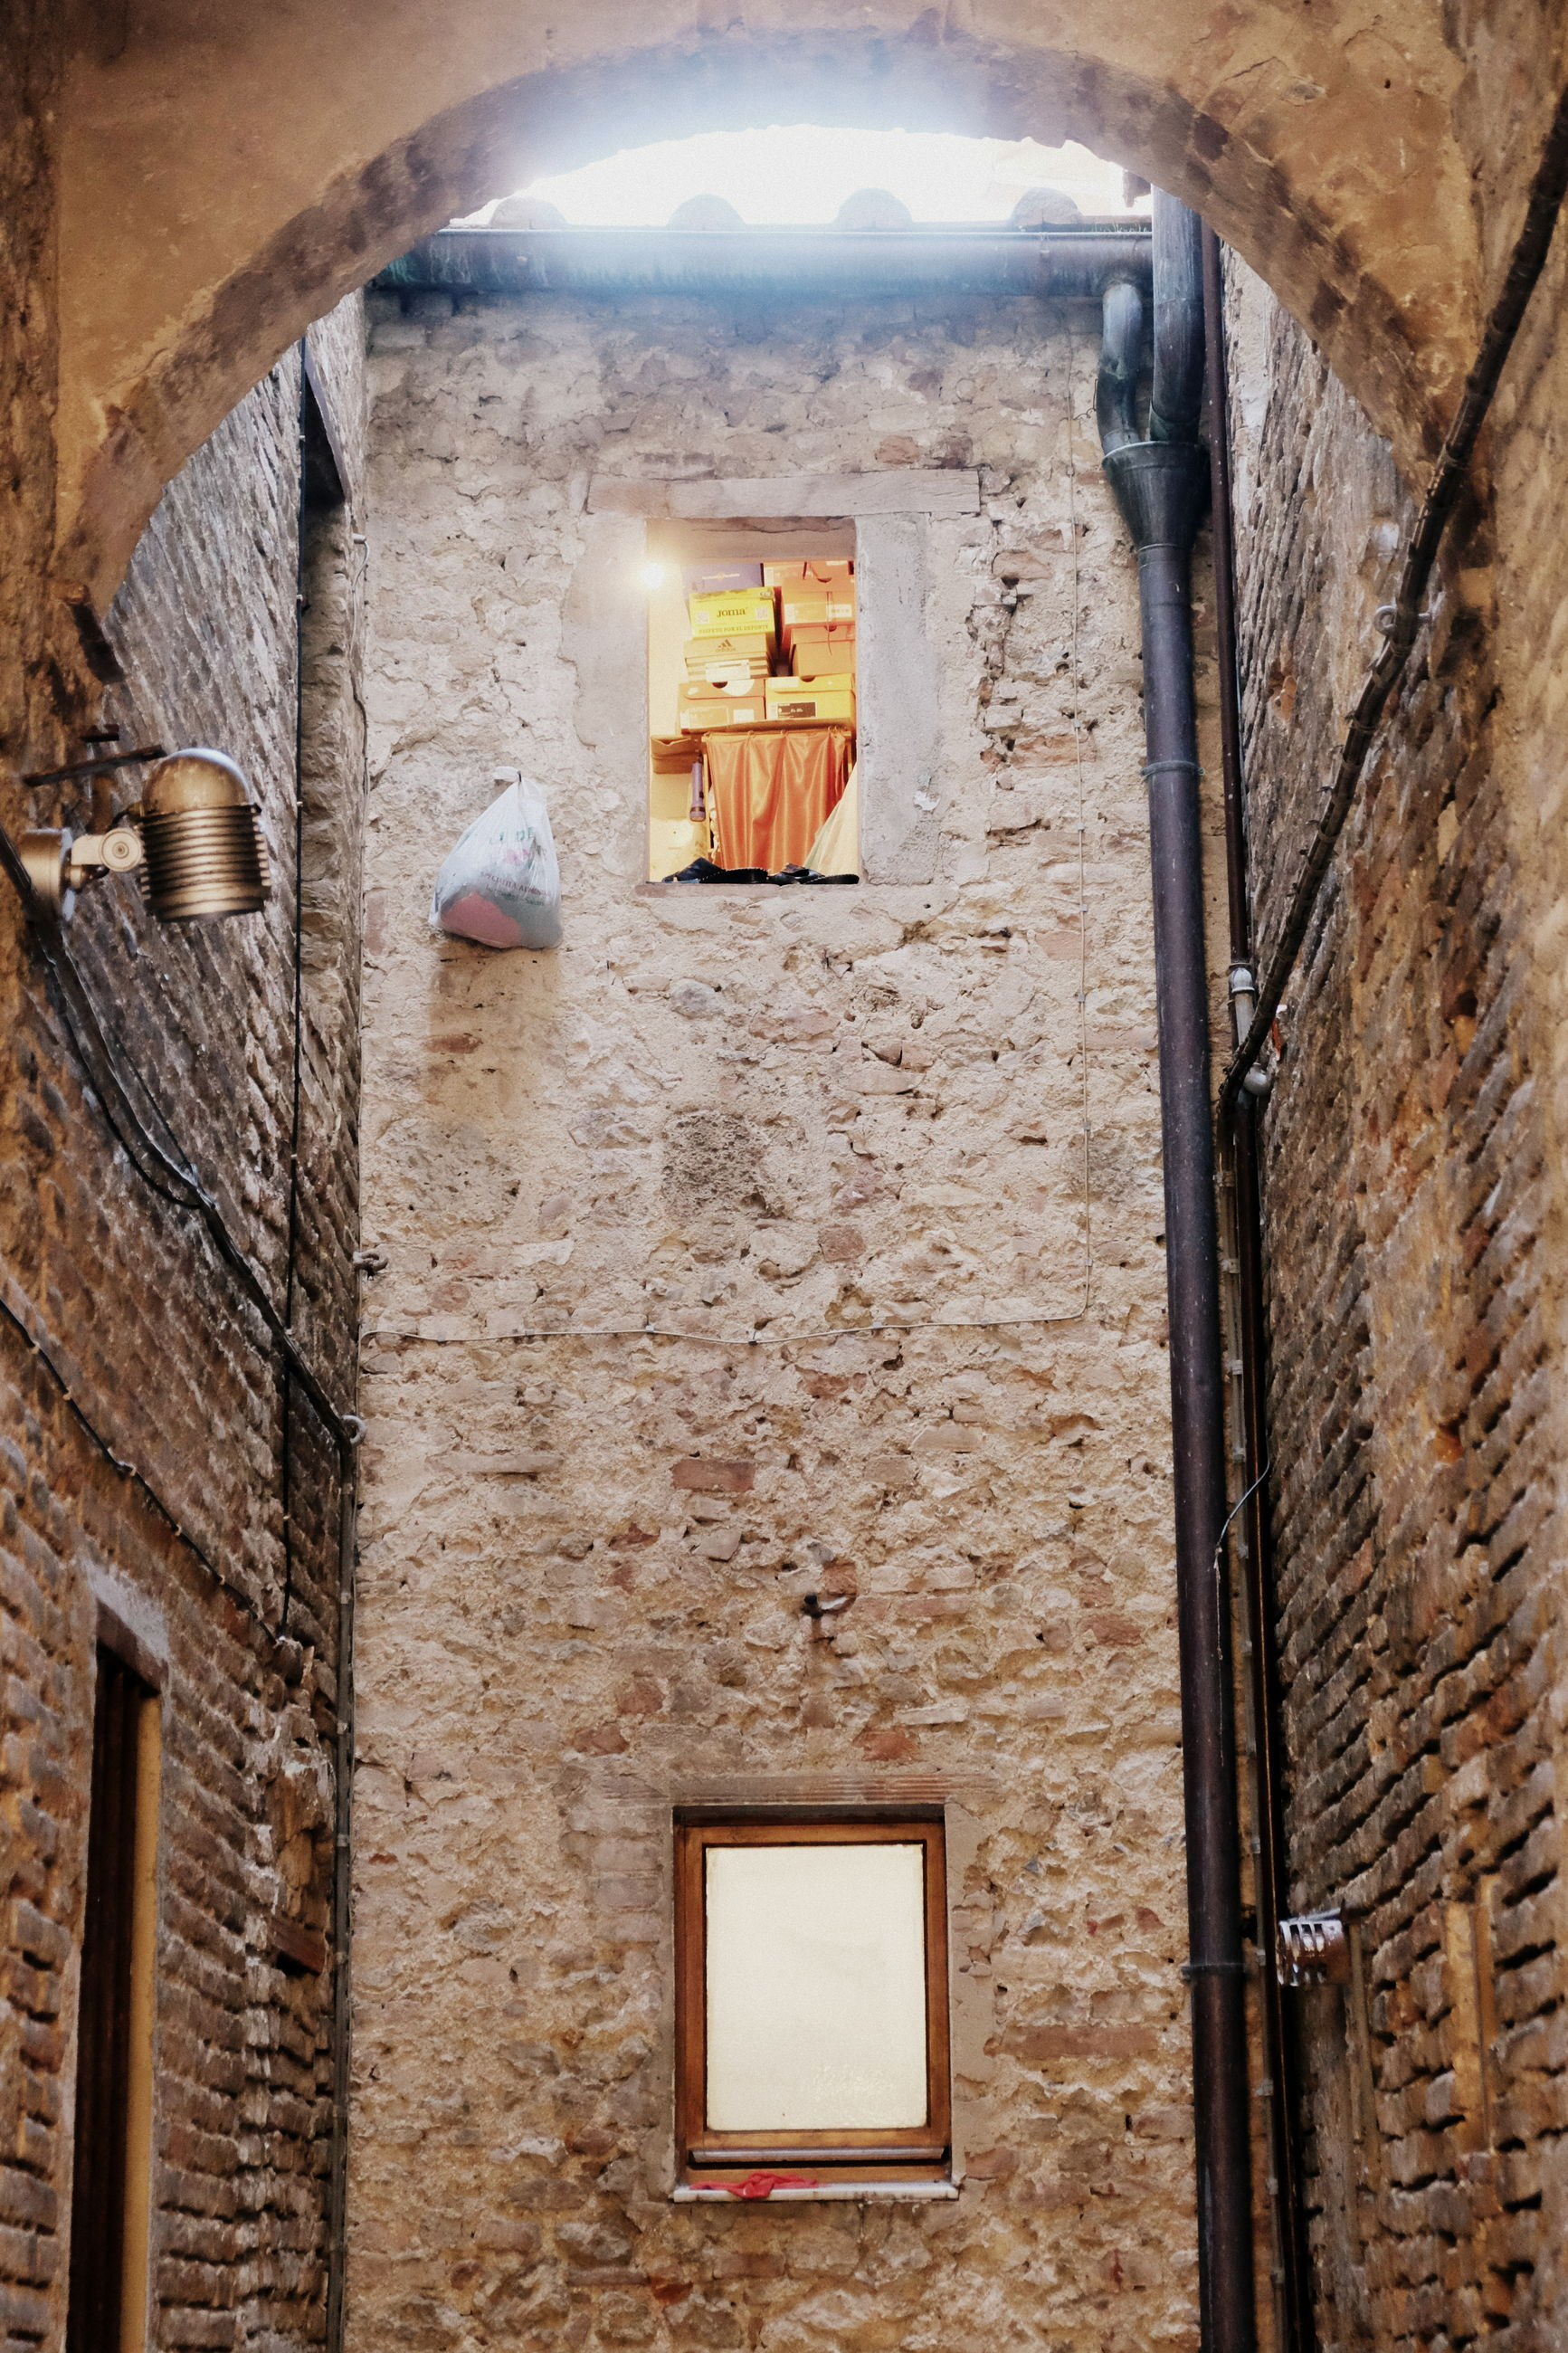 architecture, wall, built structure, no people, wall - building feature, building, low angle view, building exterior, brick, old, history, lighting equipment, the past, illuminated, window, brick wall, outdoors, house, day, electric lamp, ceiling